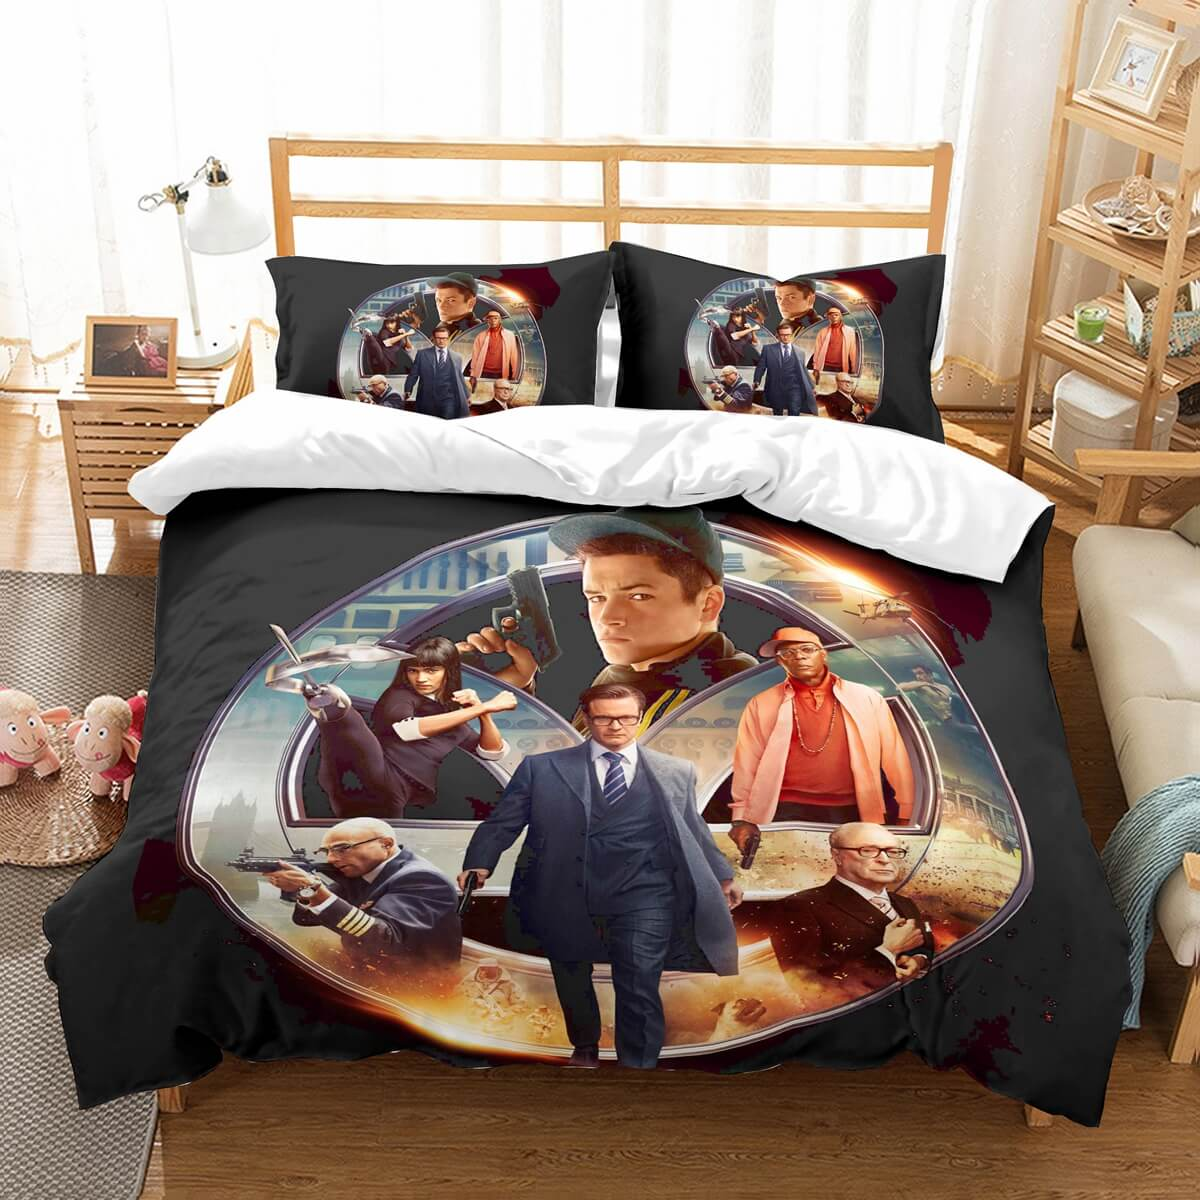 3D Customize Kingsman The Secret Service Bedding Set Duvet Cover Set Bedroom Set Bedlinen